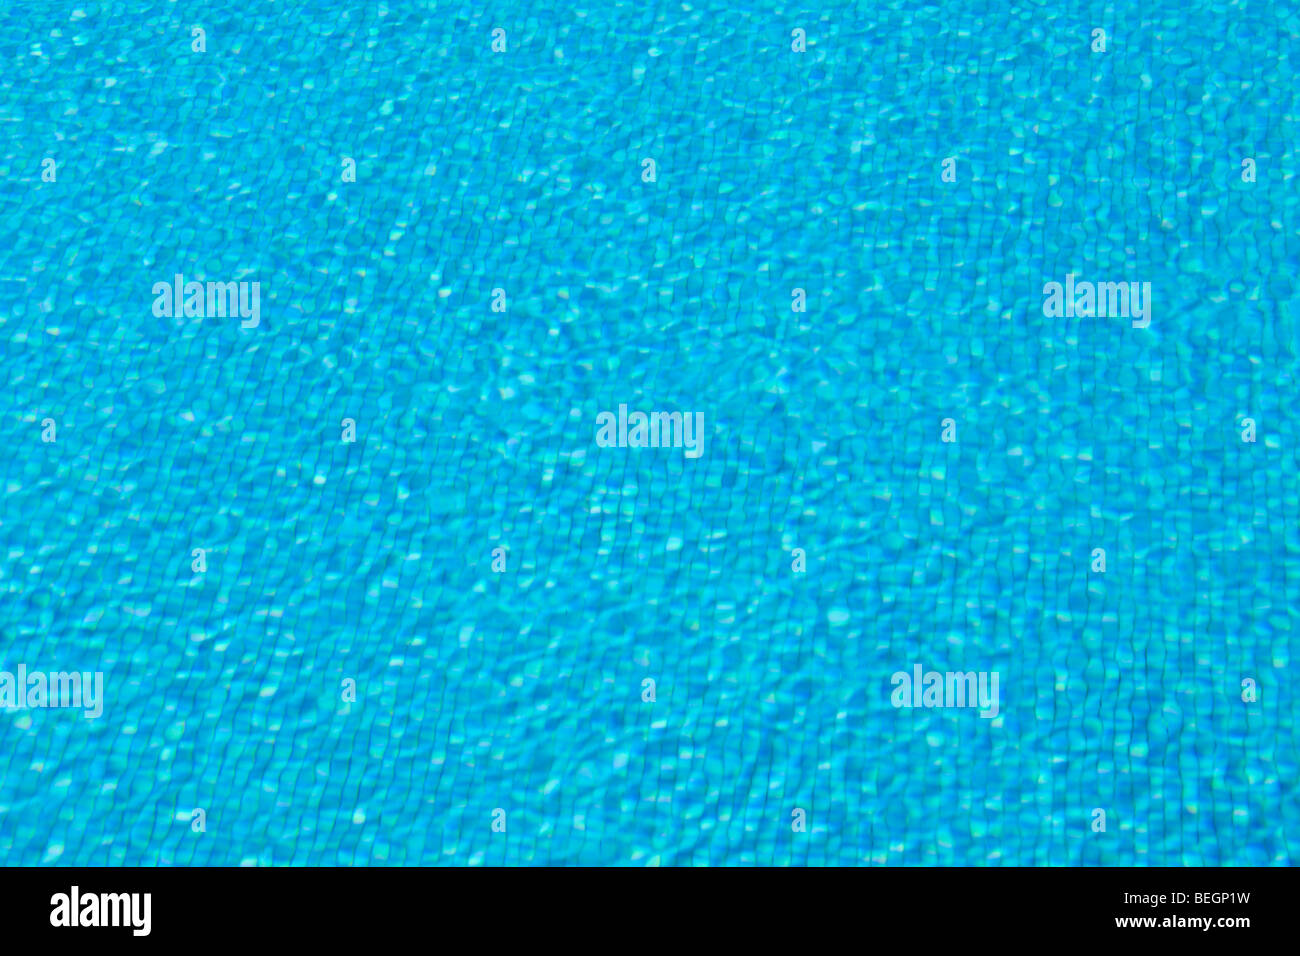 Blue tiles and ripples of water in a 'swimming pool' - Stock Image